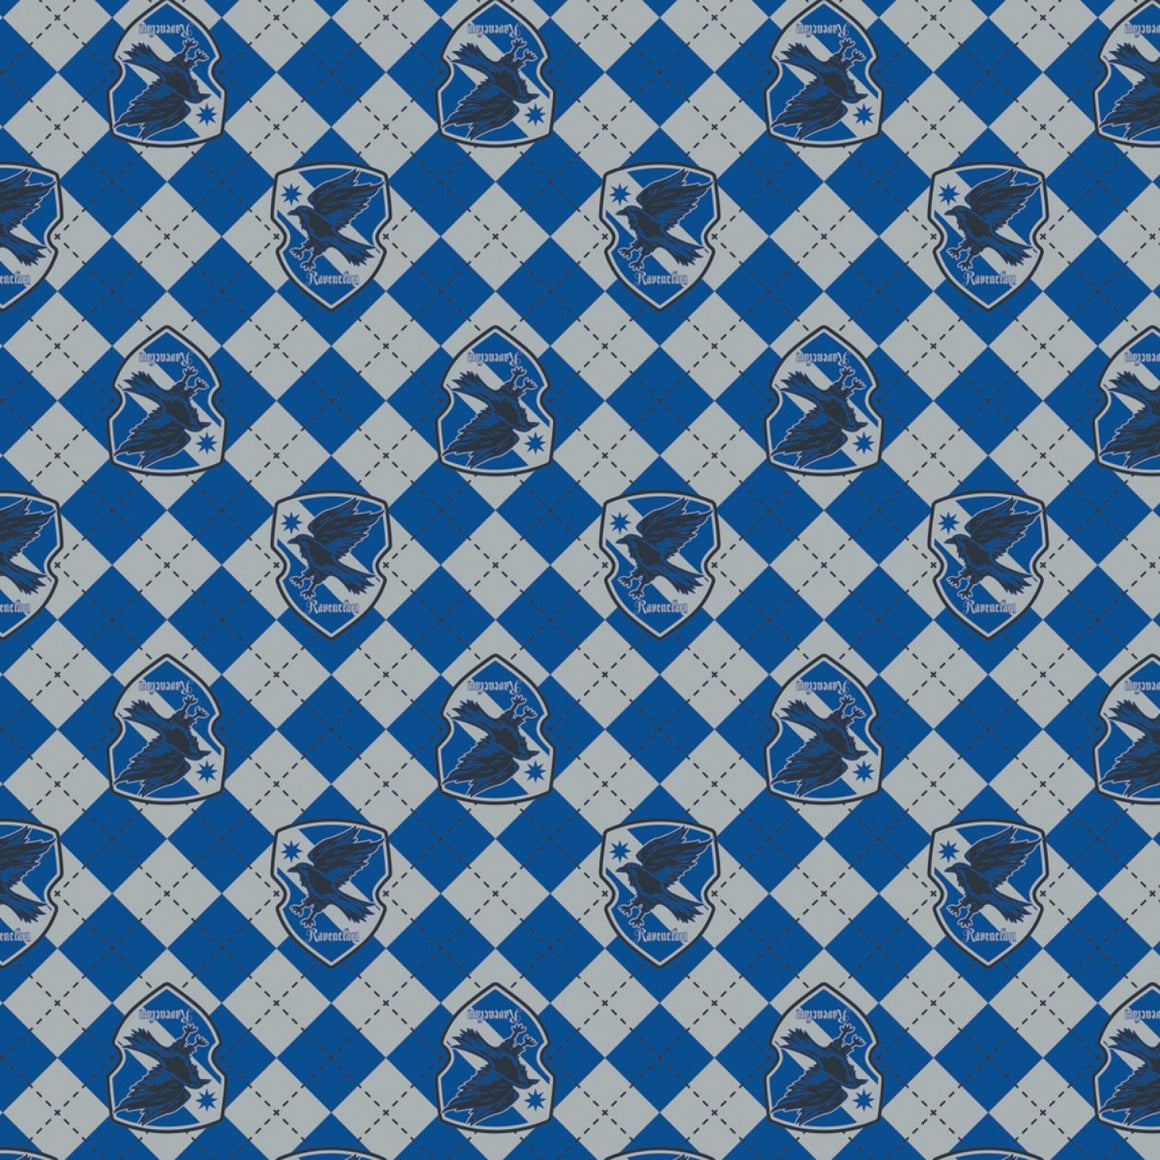 Royal Blue Grey and Black Ravenclaw Crest Harry Potter Argyle Flannel, 1 Yard - Raspberry Creek Fabrics